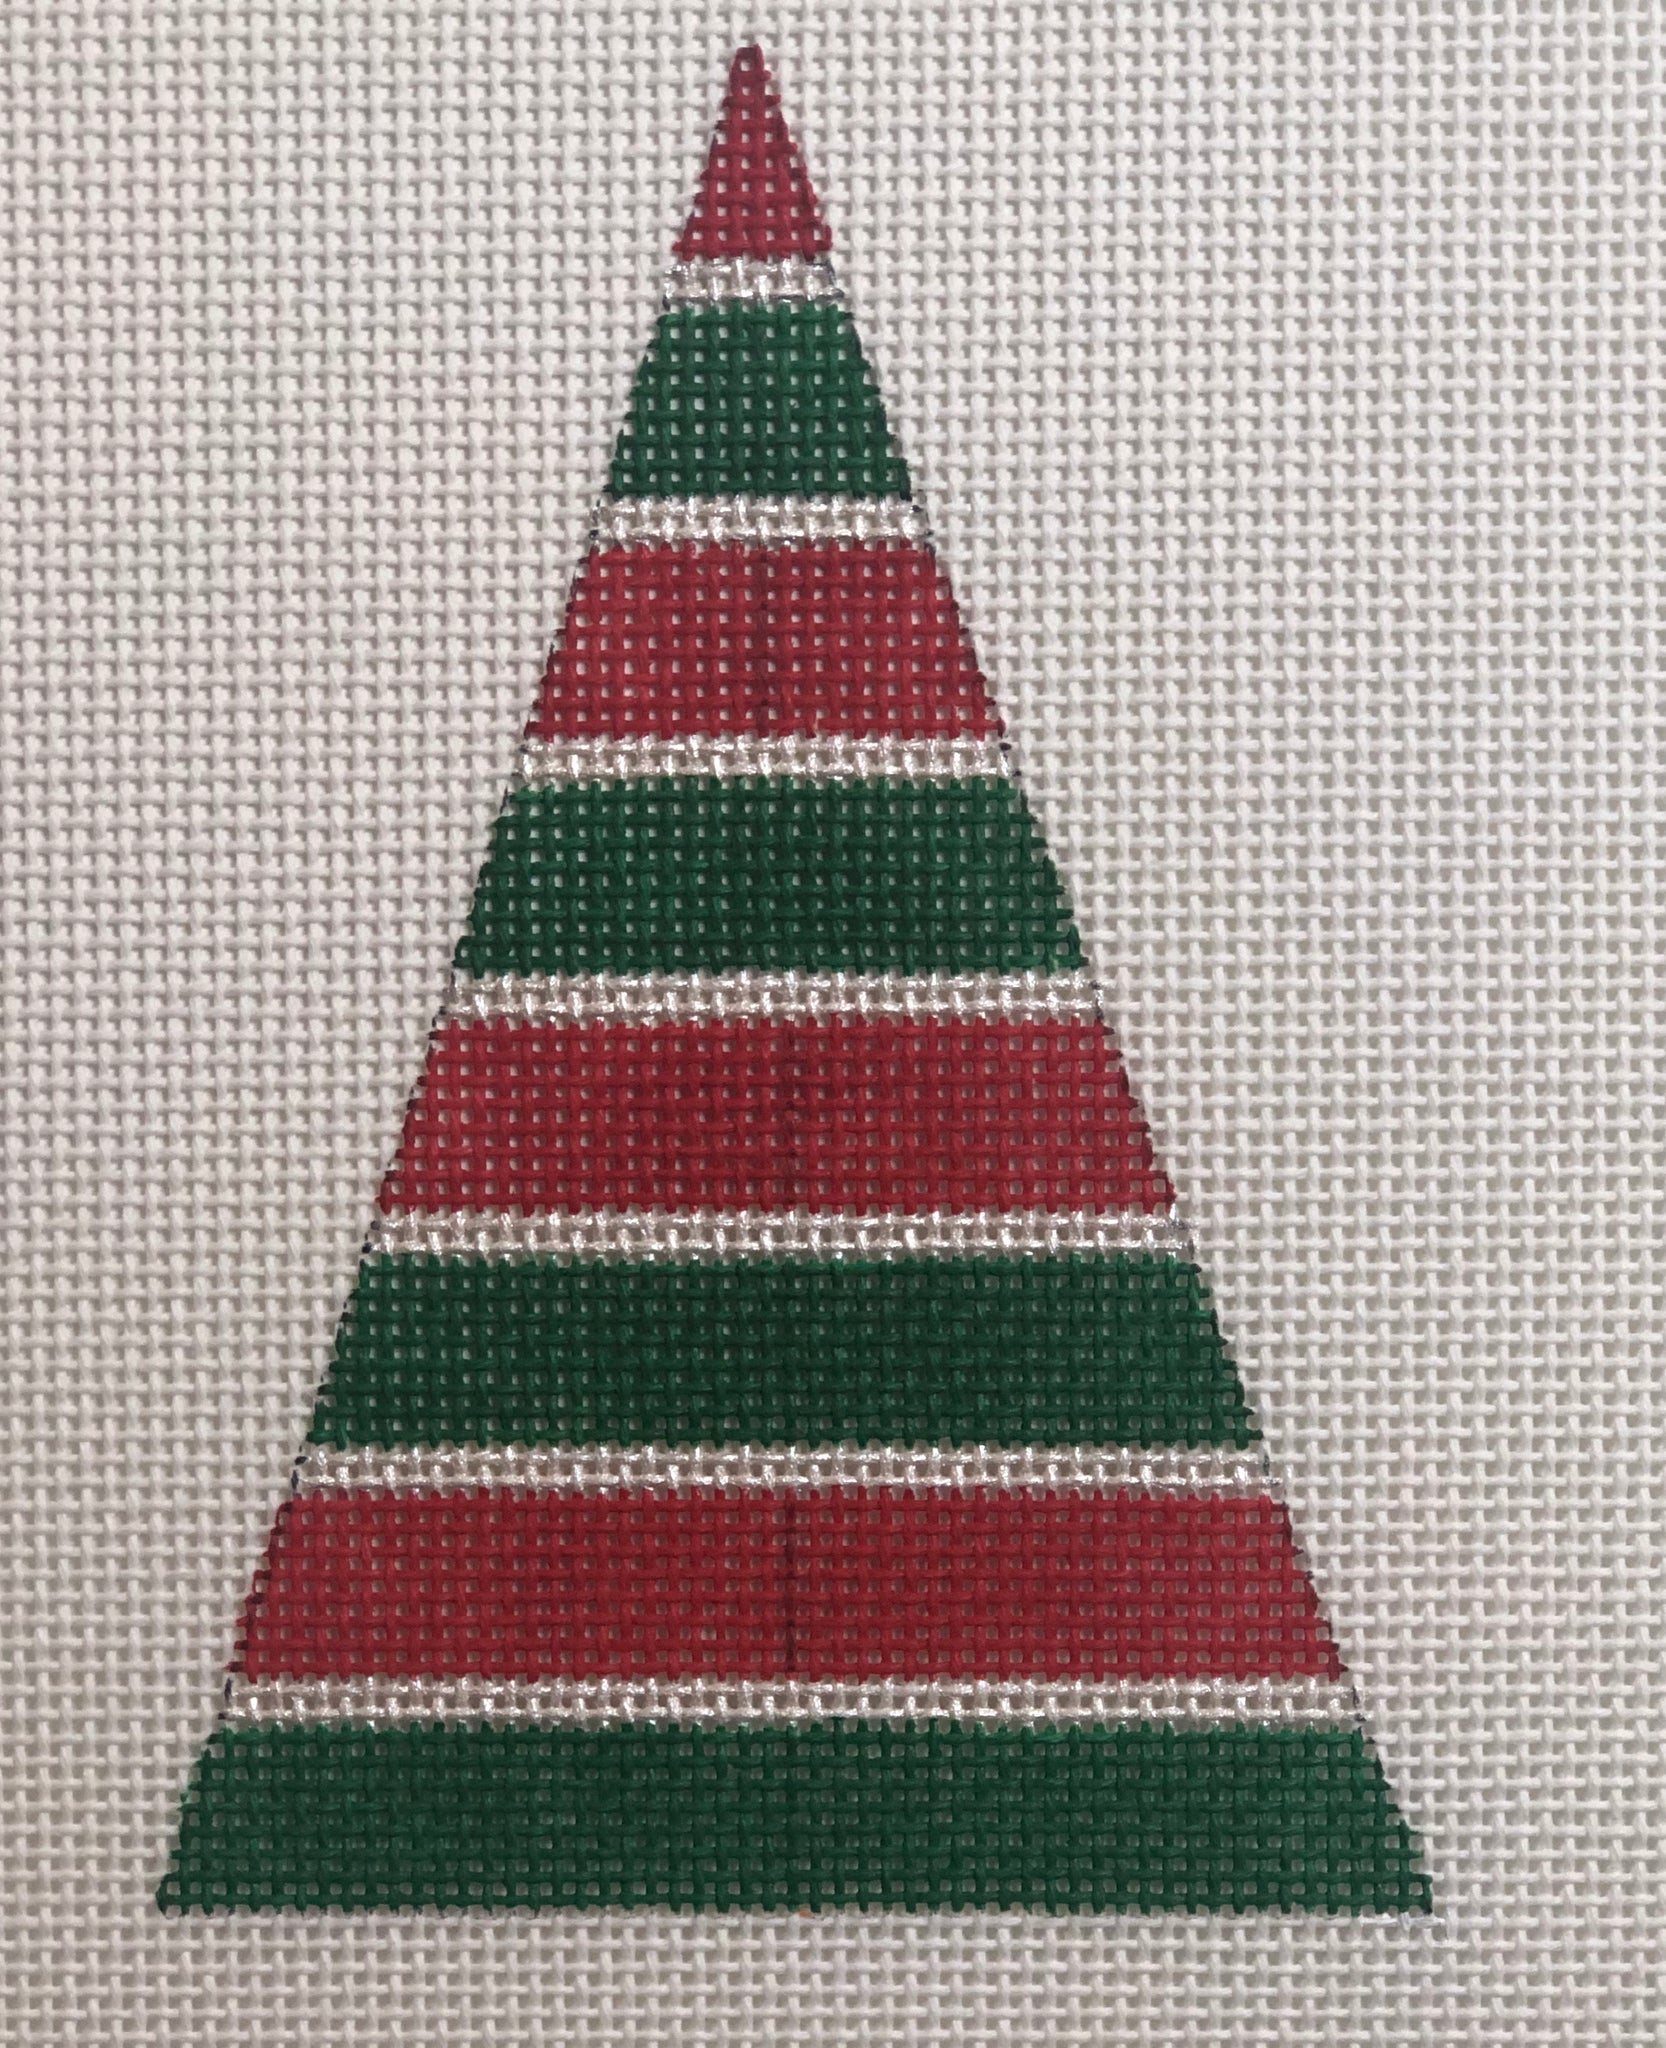 Tree with stitch guide tre005